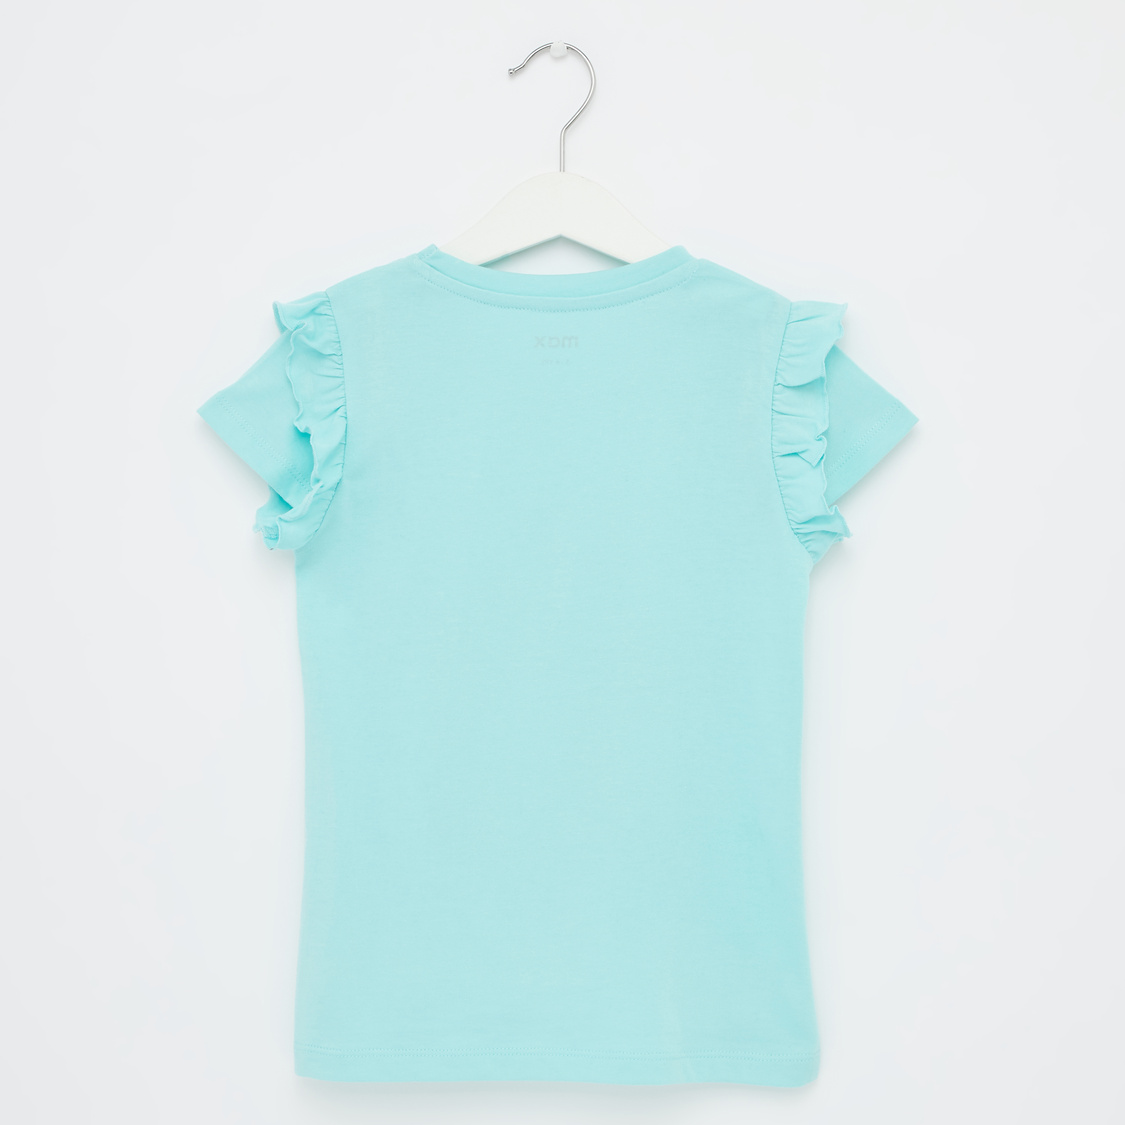 Graphic Print T-shirt with Cap Sleeves and Ruffle Detail